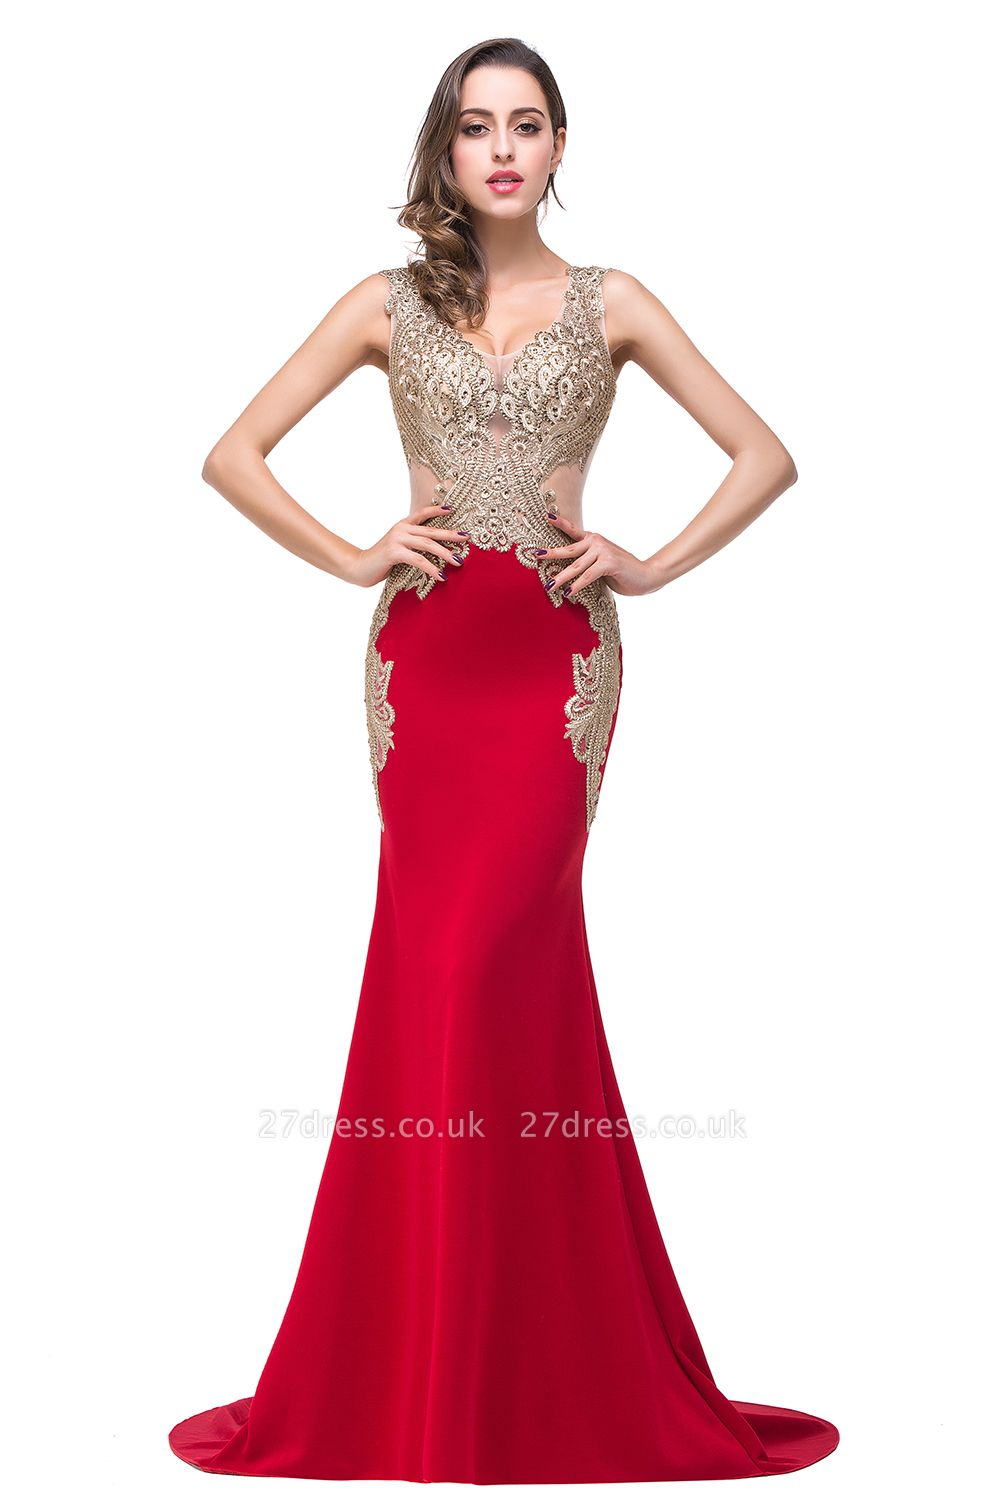 Delicate Mermaid Appliques Straps Prom Dress UK Sweep Train Sleeveless